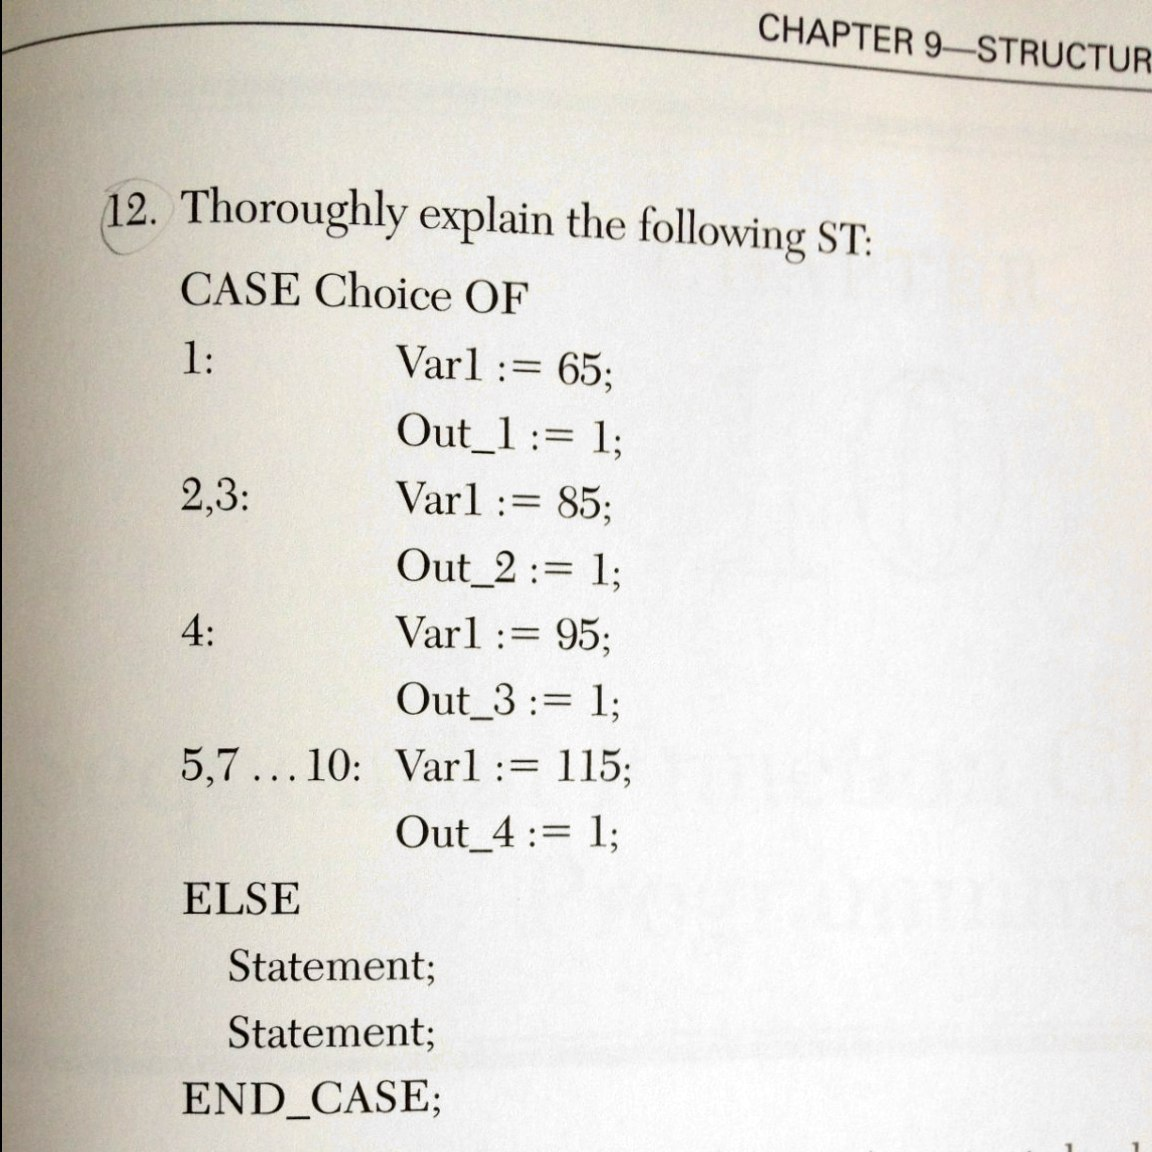 Thoroughly explain the following ST: CASE Choice O